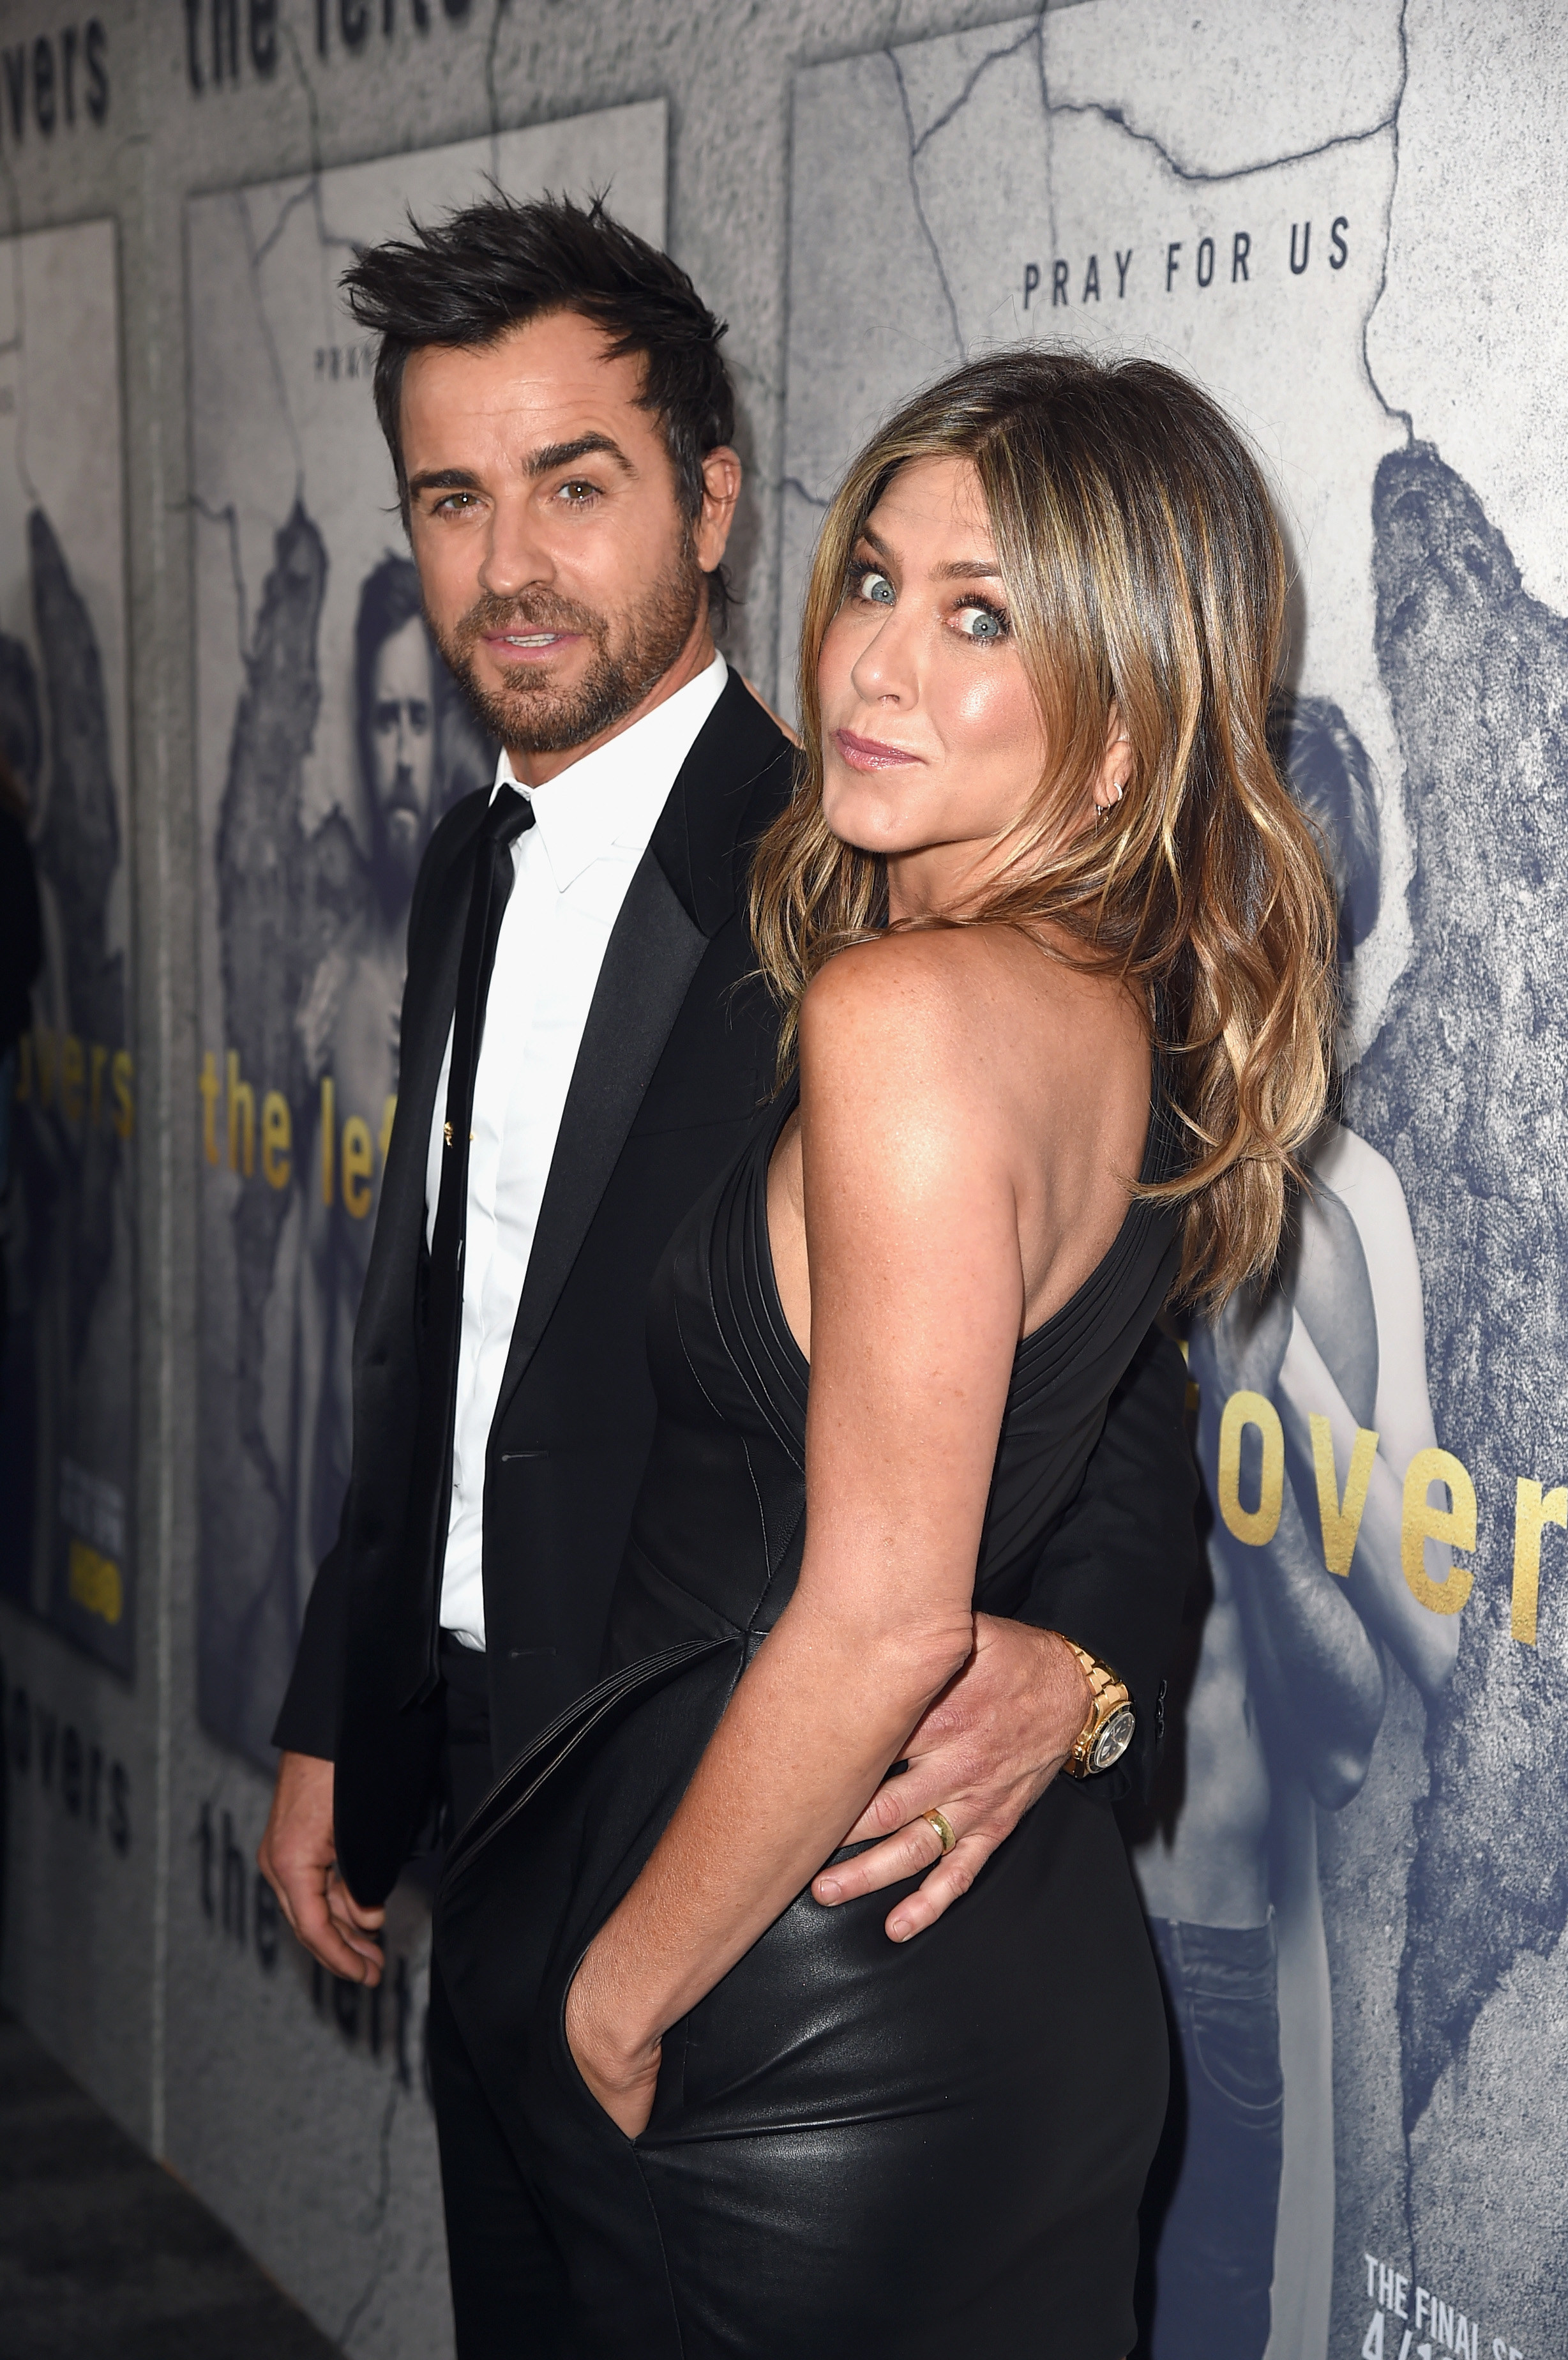 Theroux and Aniston at the premiere of season three of The Leftovers